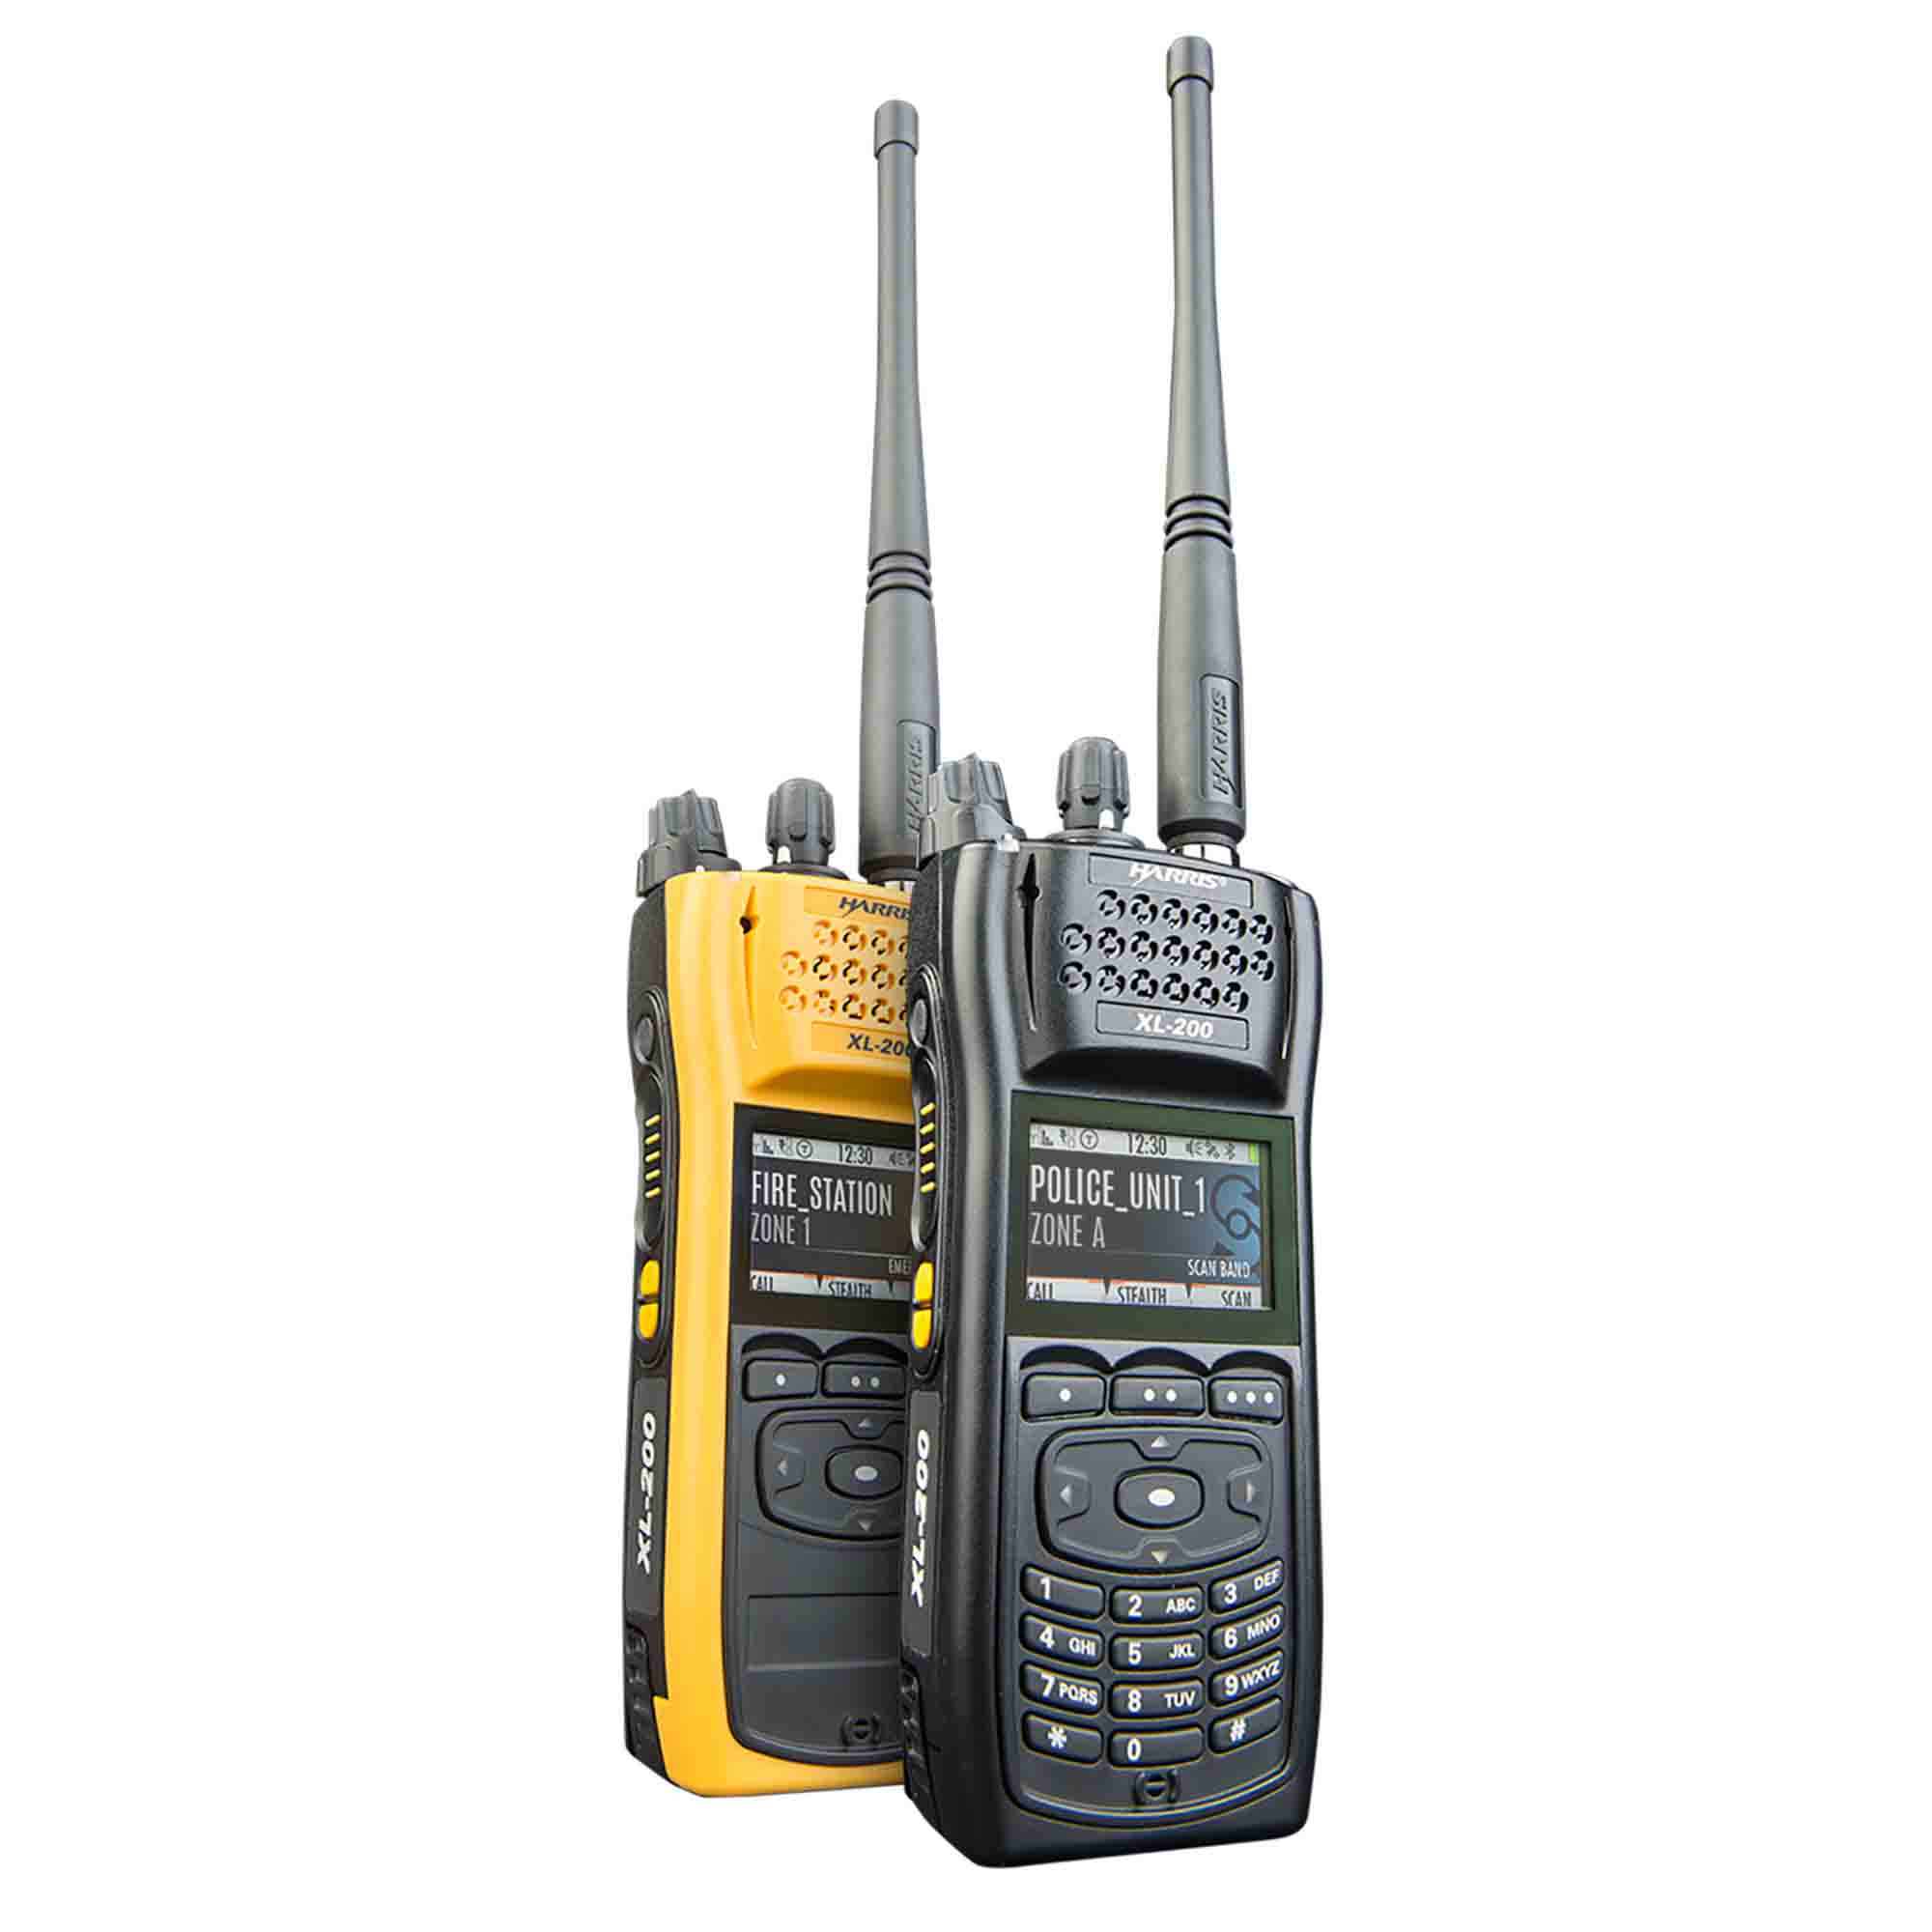 XL-200P Multiband Portable Radio